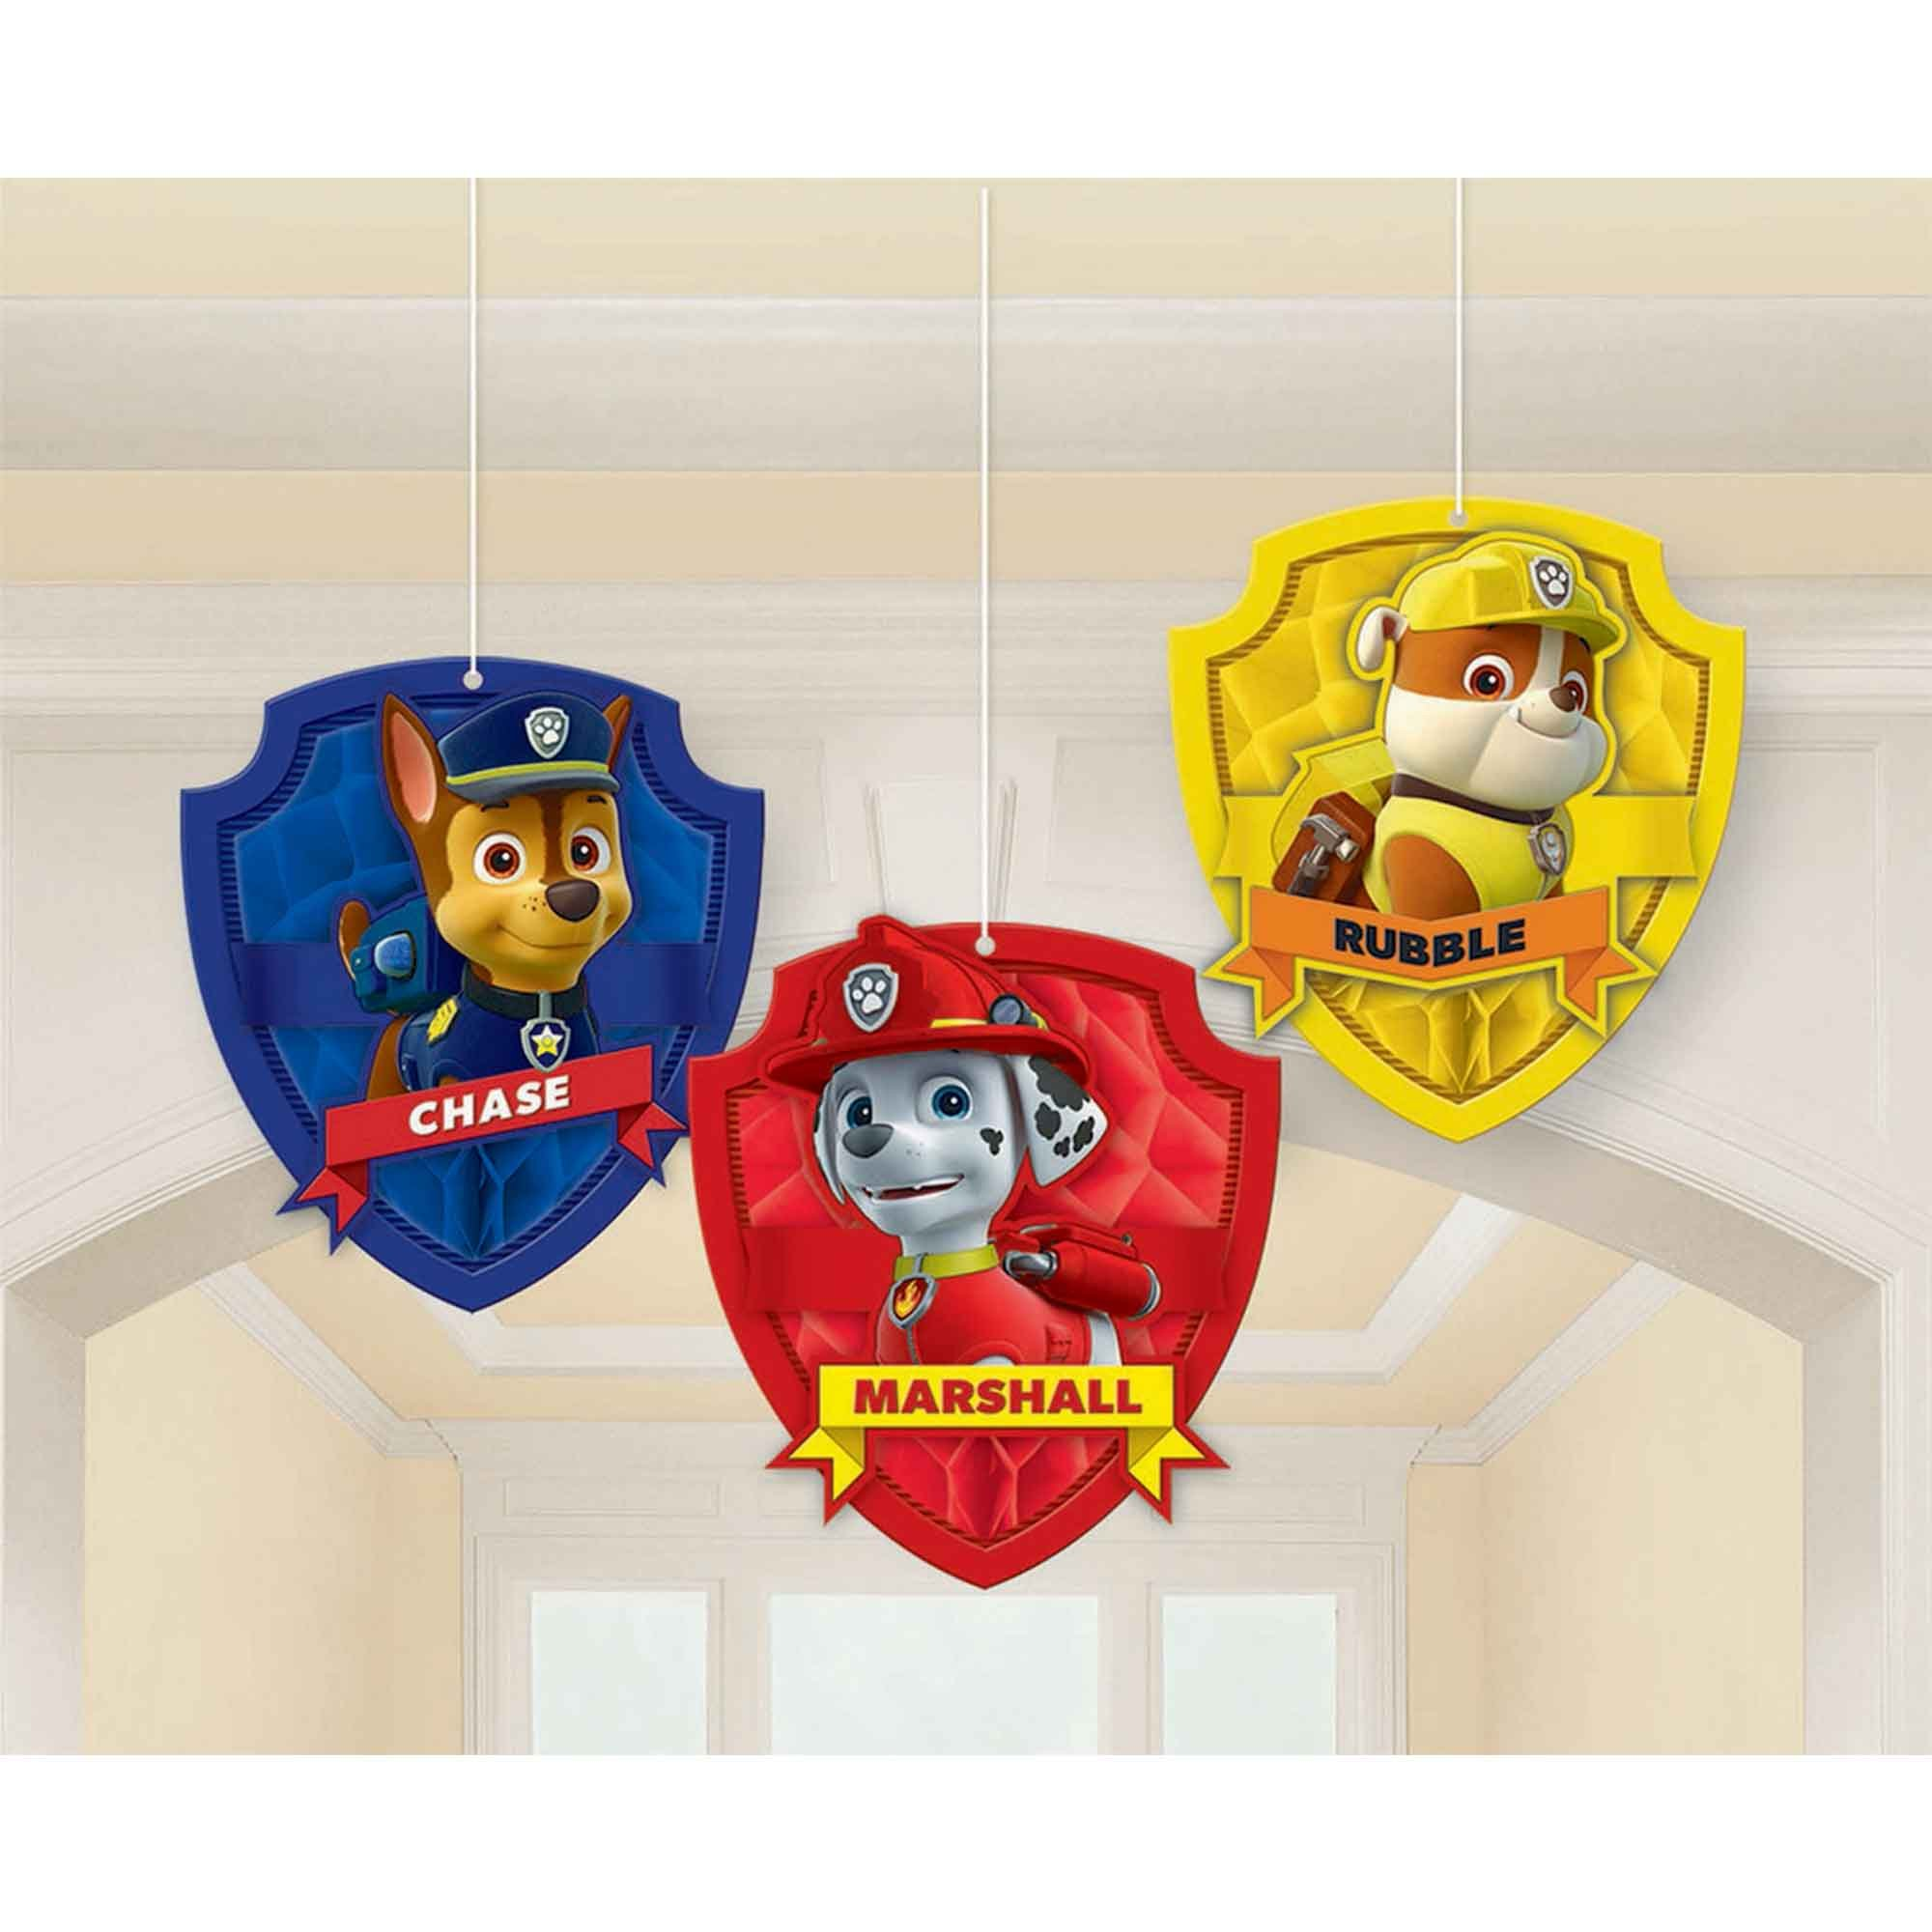 Paw Patrol Honeycomb Decorations - Tissue & Printed Paper